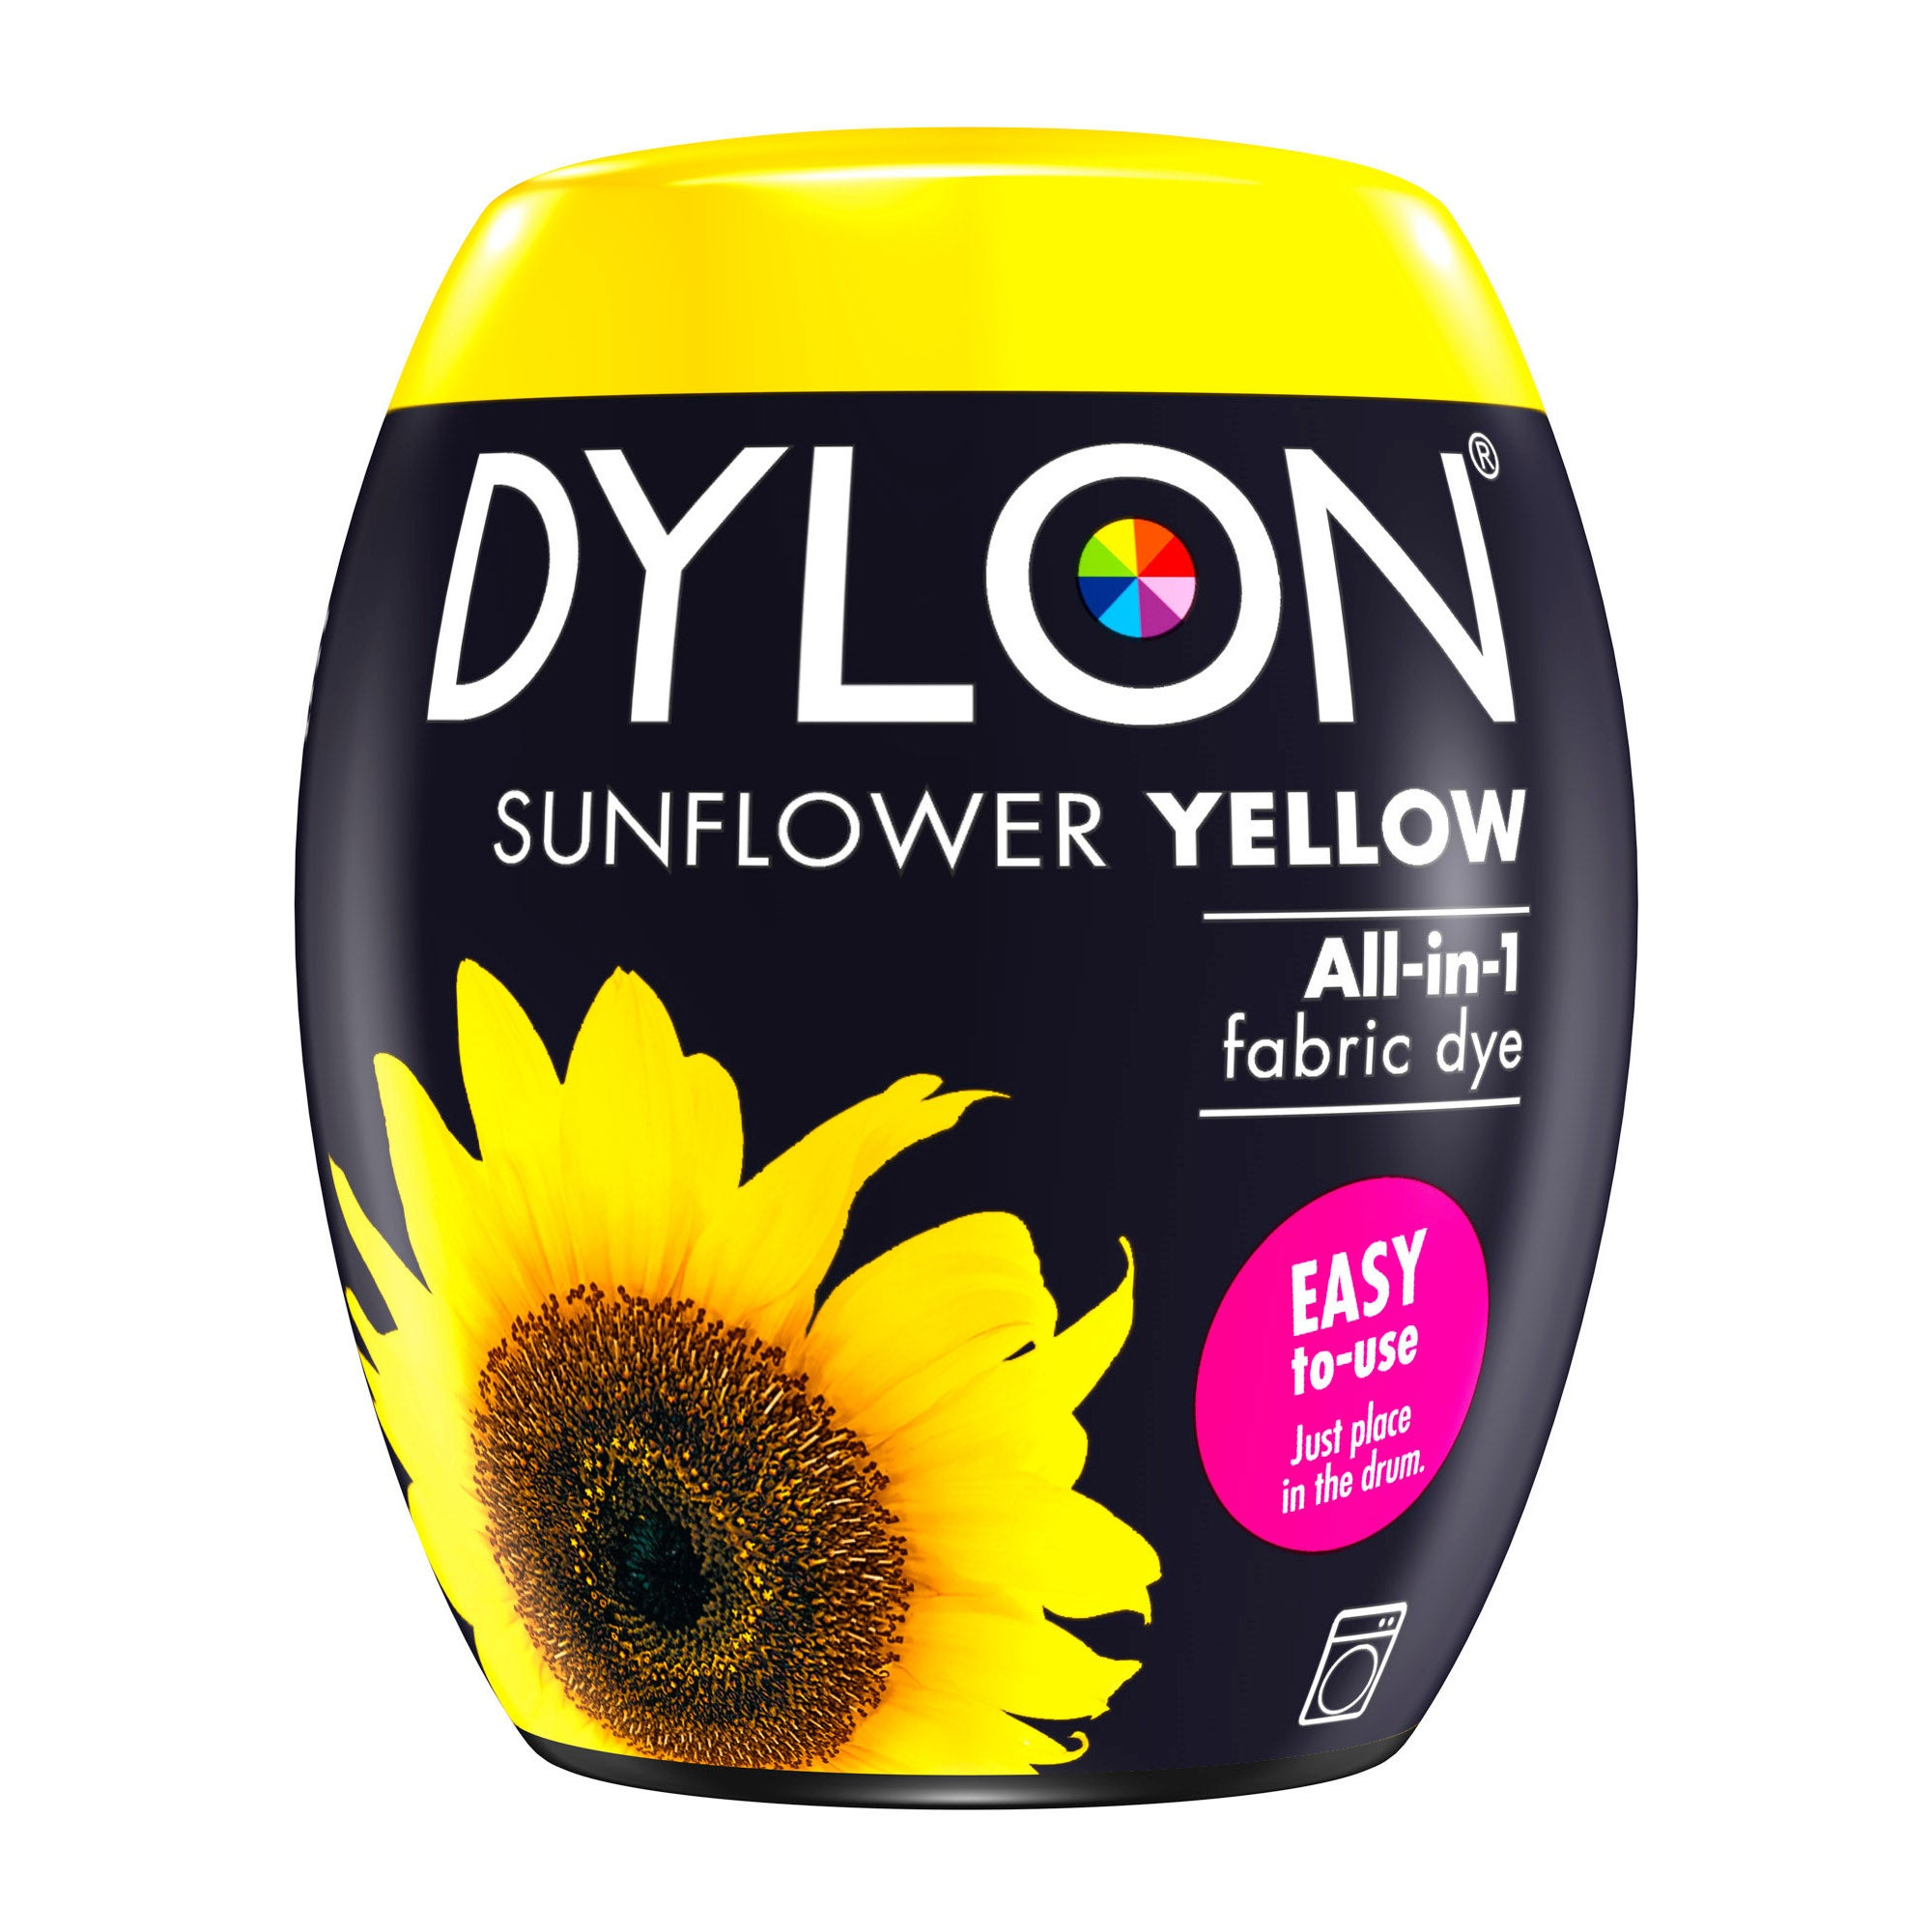 Image of Dylon Sunflower Yellow Machine Dye Pod Sunflower